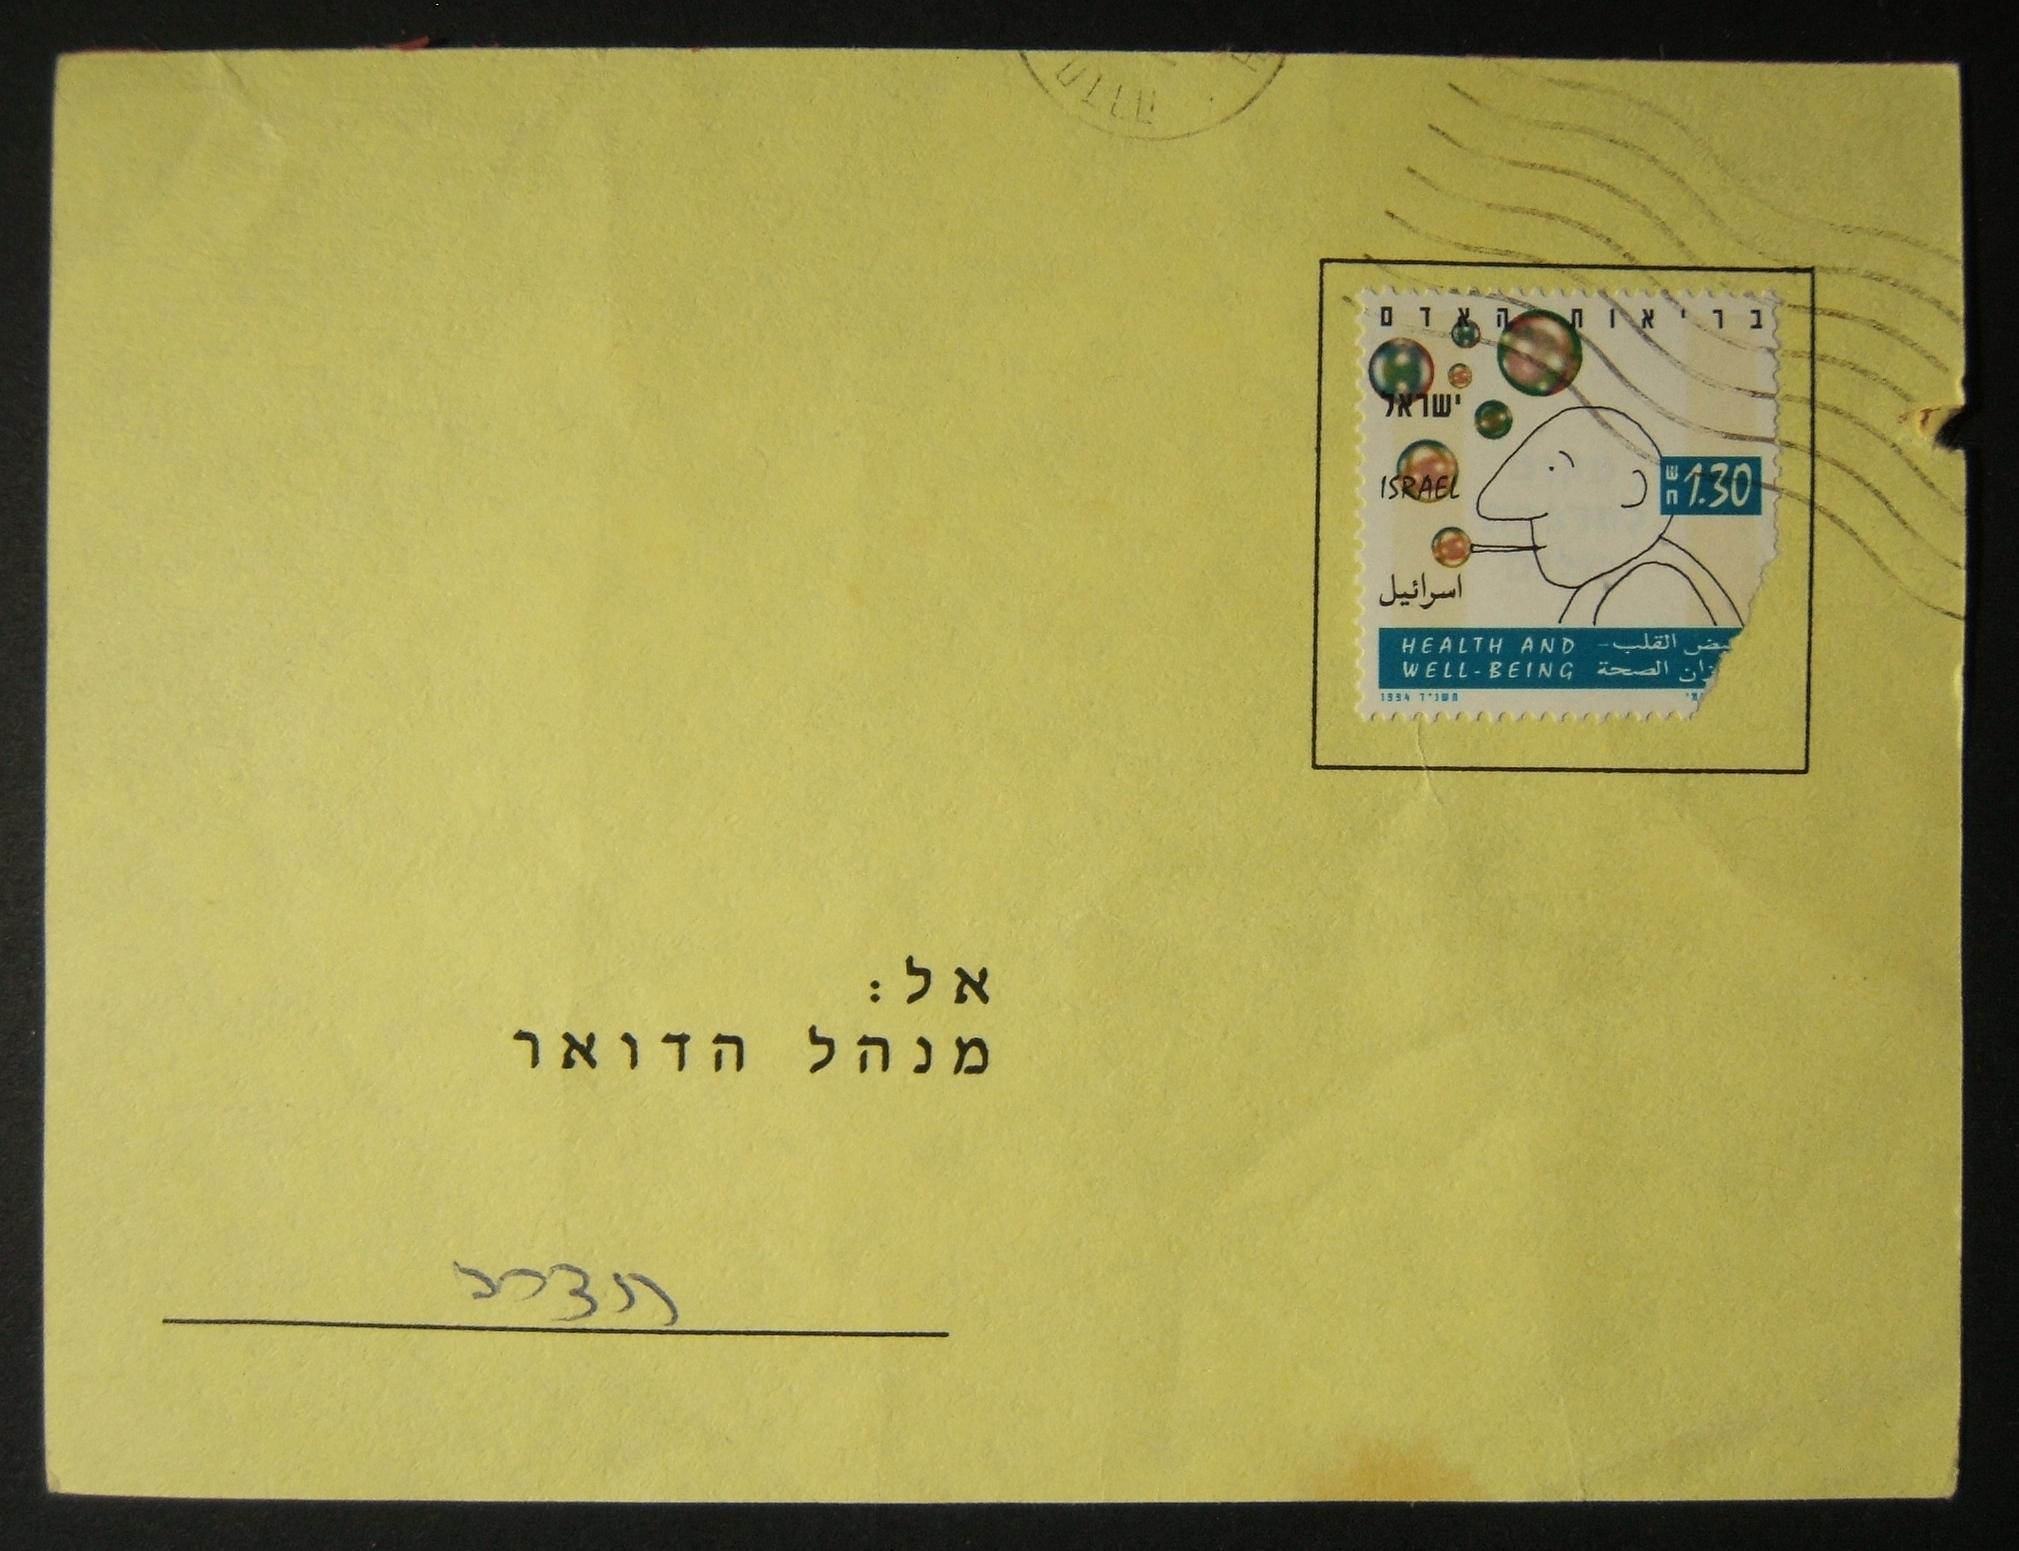 1994 DO-74 rate period franked taxation notice: 12-4-94